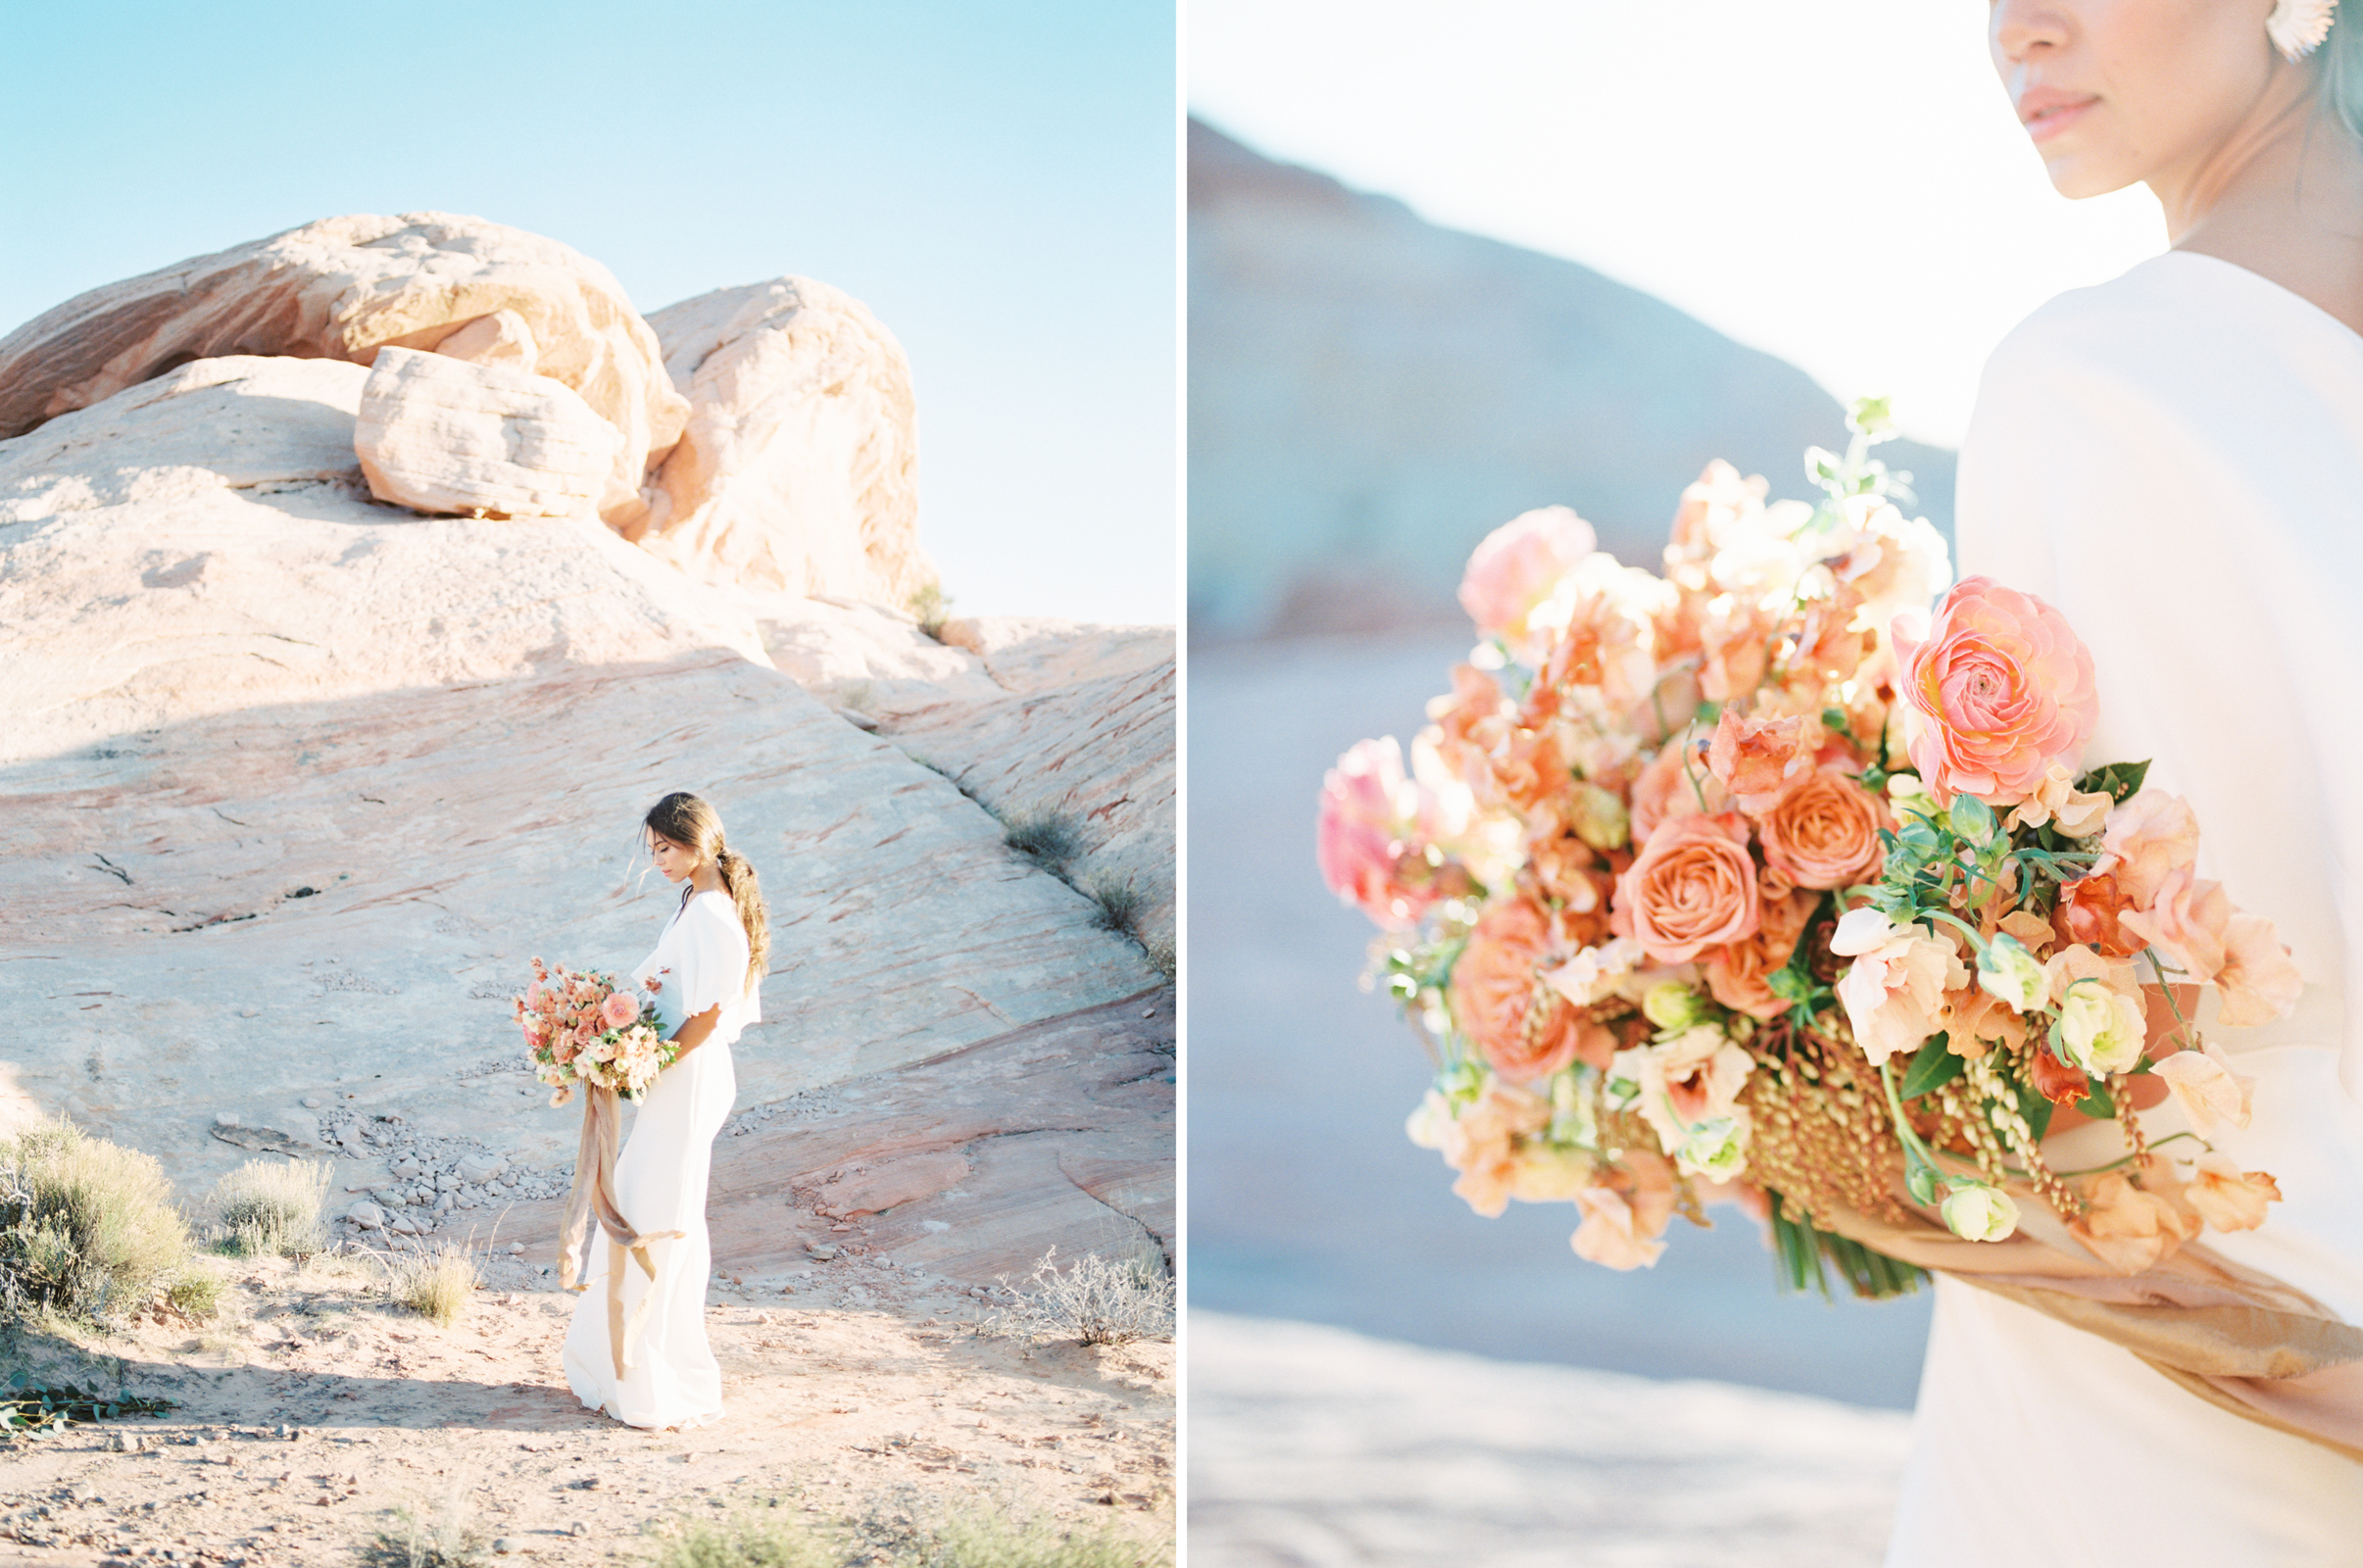 AKP_Desert_Wedding_Bridal_Shoot_Film_Fine_Art_Wedding_Photographer_Los_Angeles-9.jpg